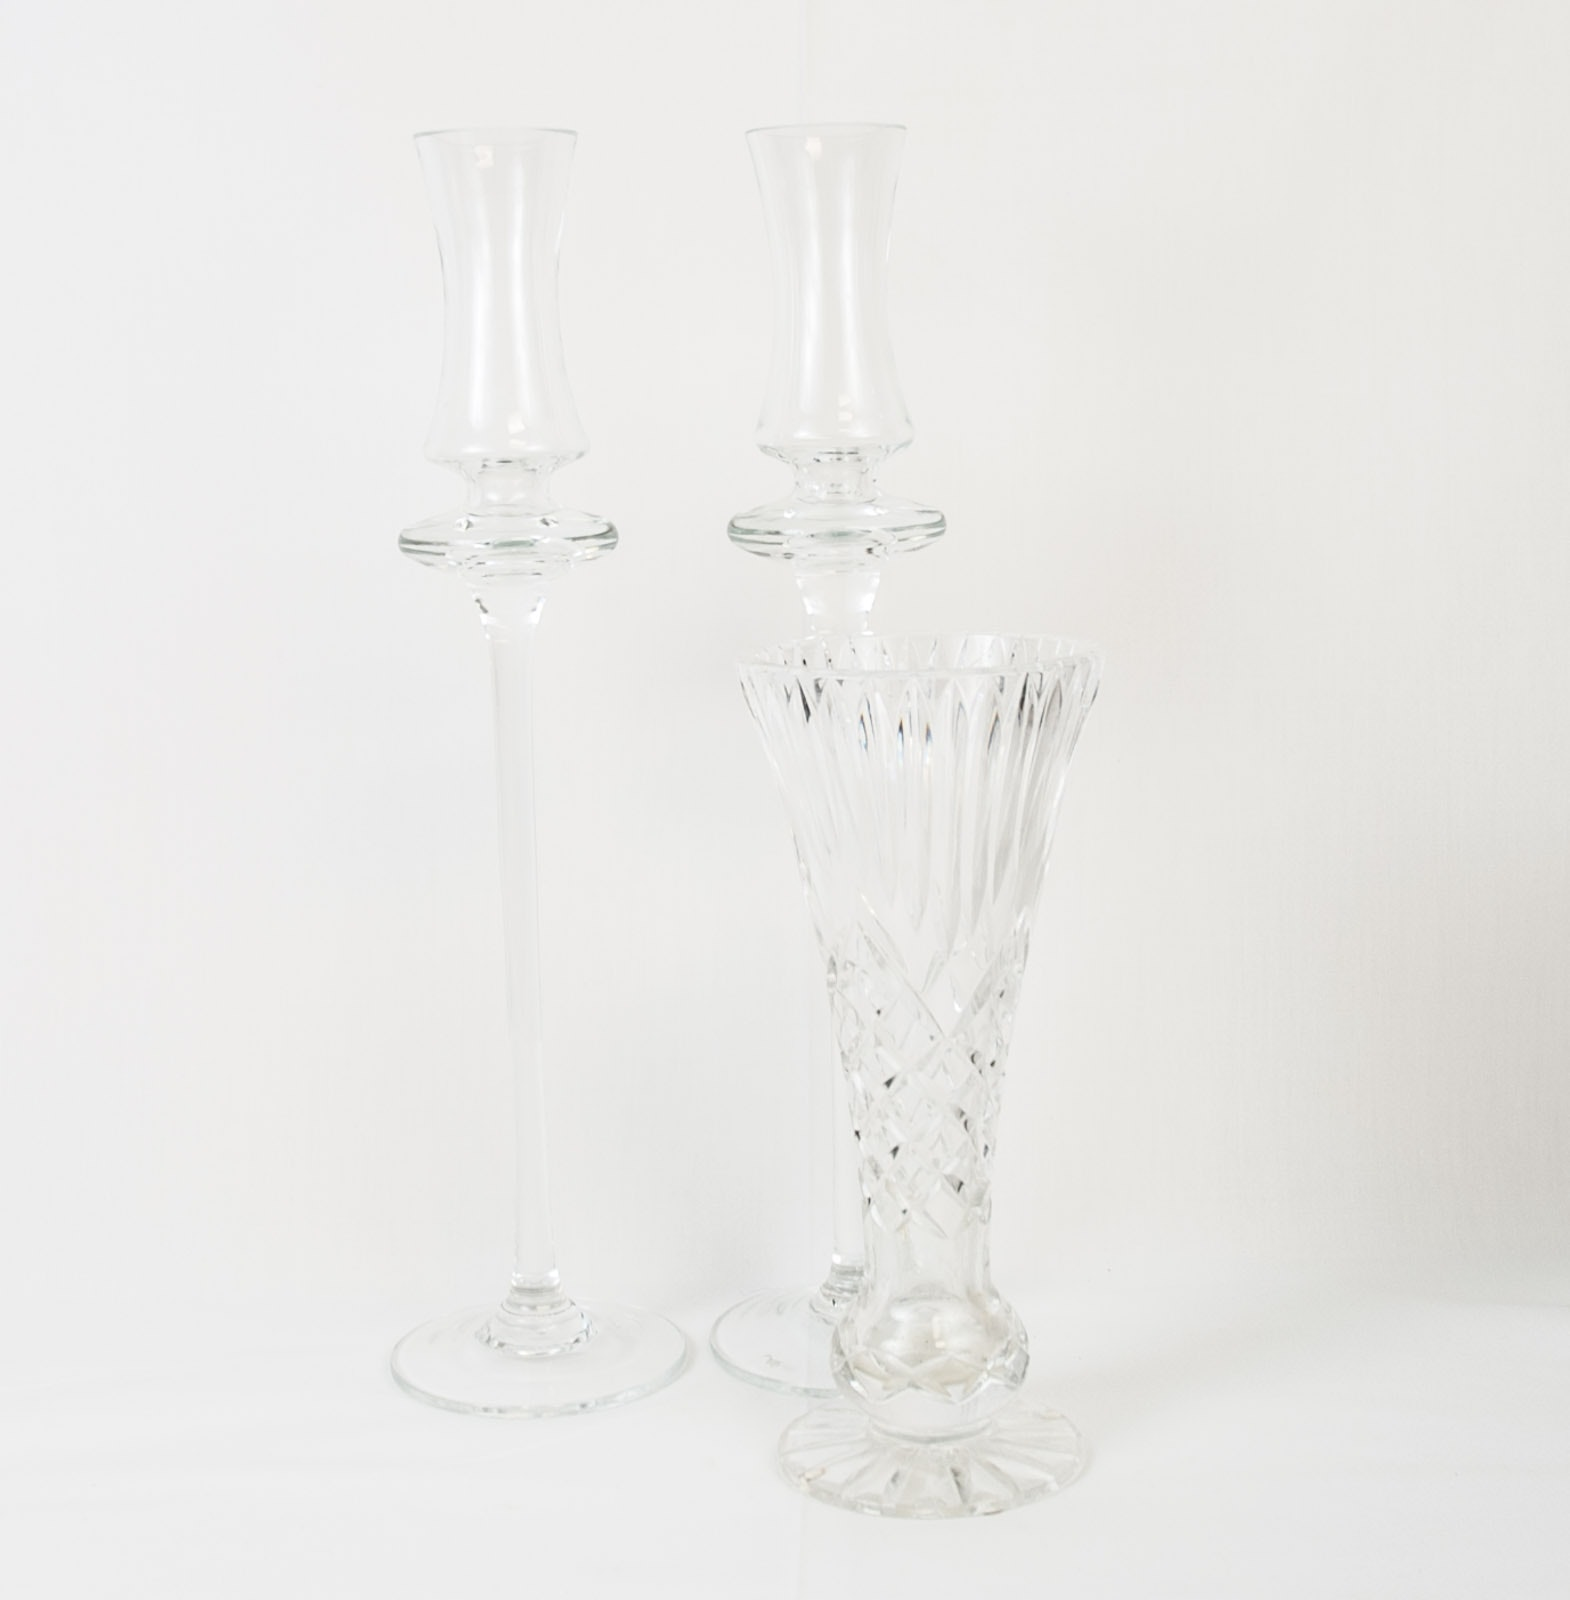 Glass Candlesticks and Crystal Vase